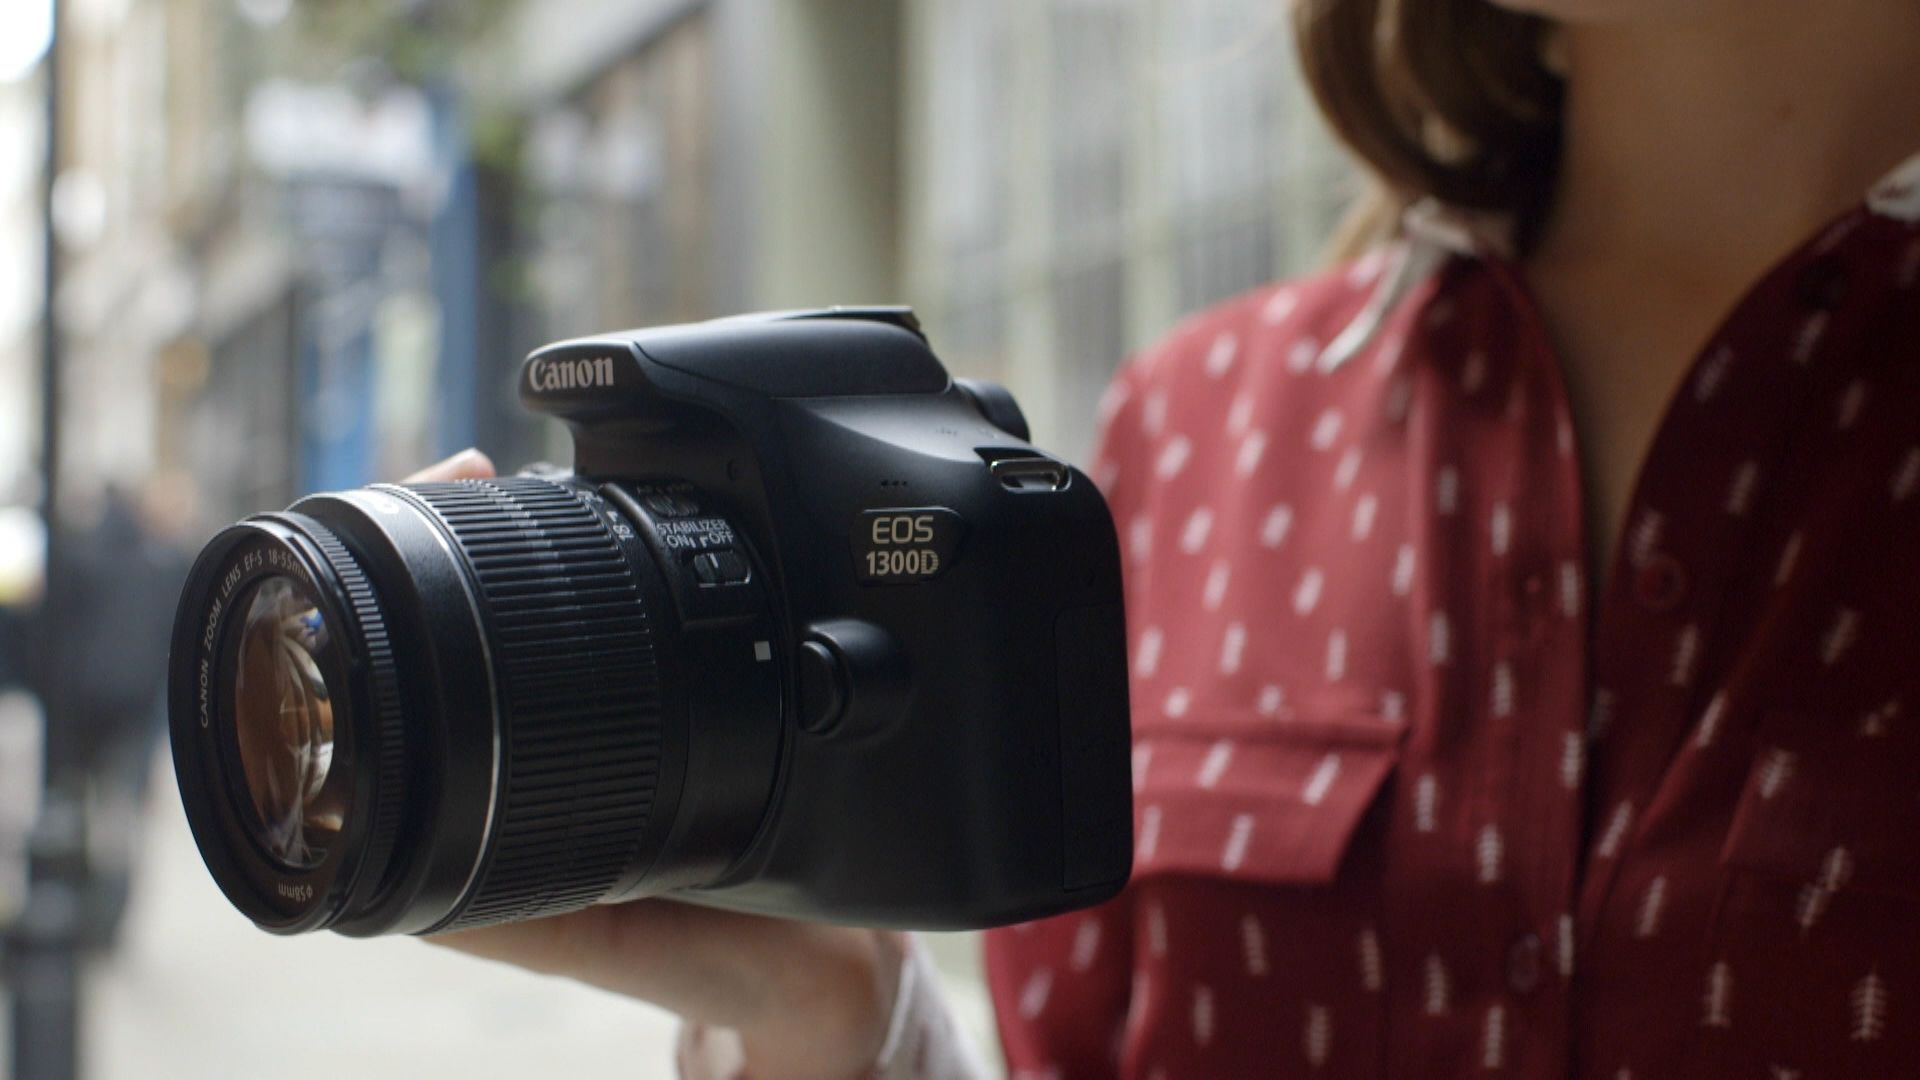 Canon Eos 1300d Digital Slr Camera With 18 55mm Lens Hd 1080p 18mp Is Ii Wi Fi Nfc 3 Lcd Screen At John Lewis Partners